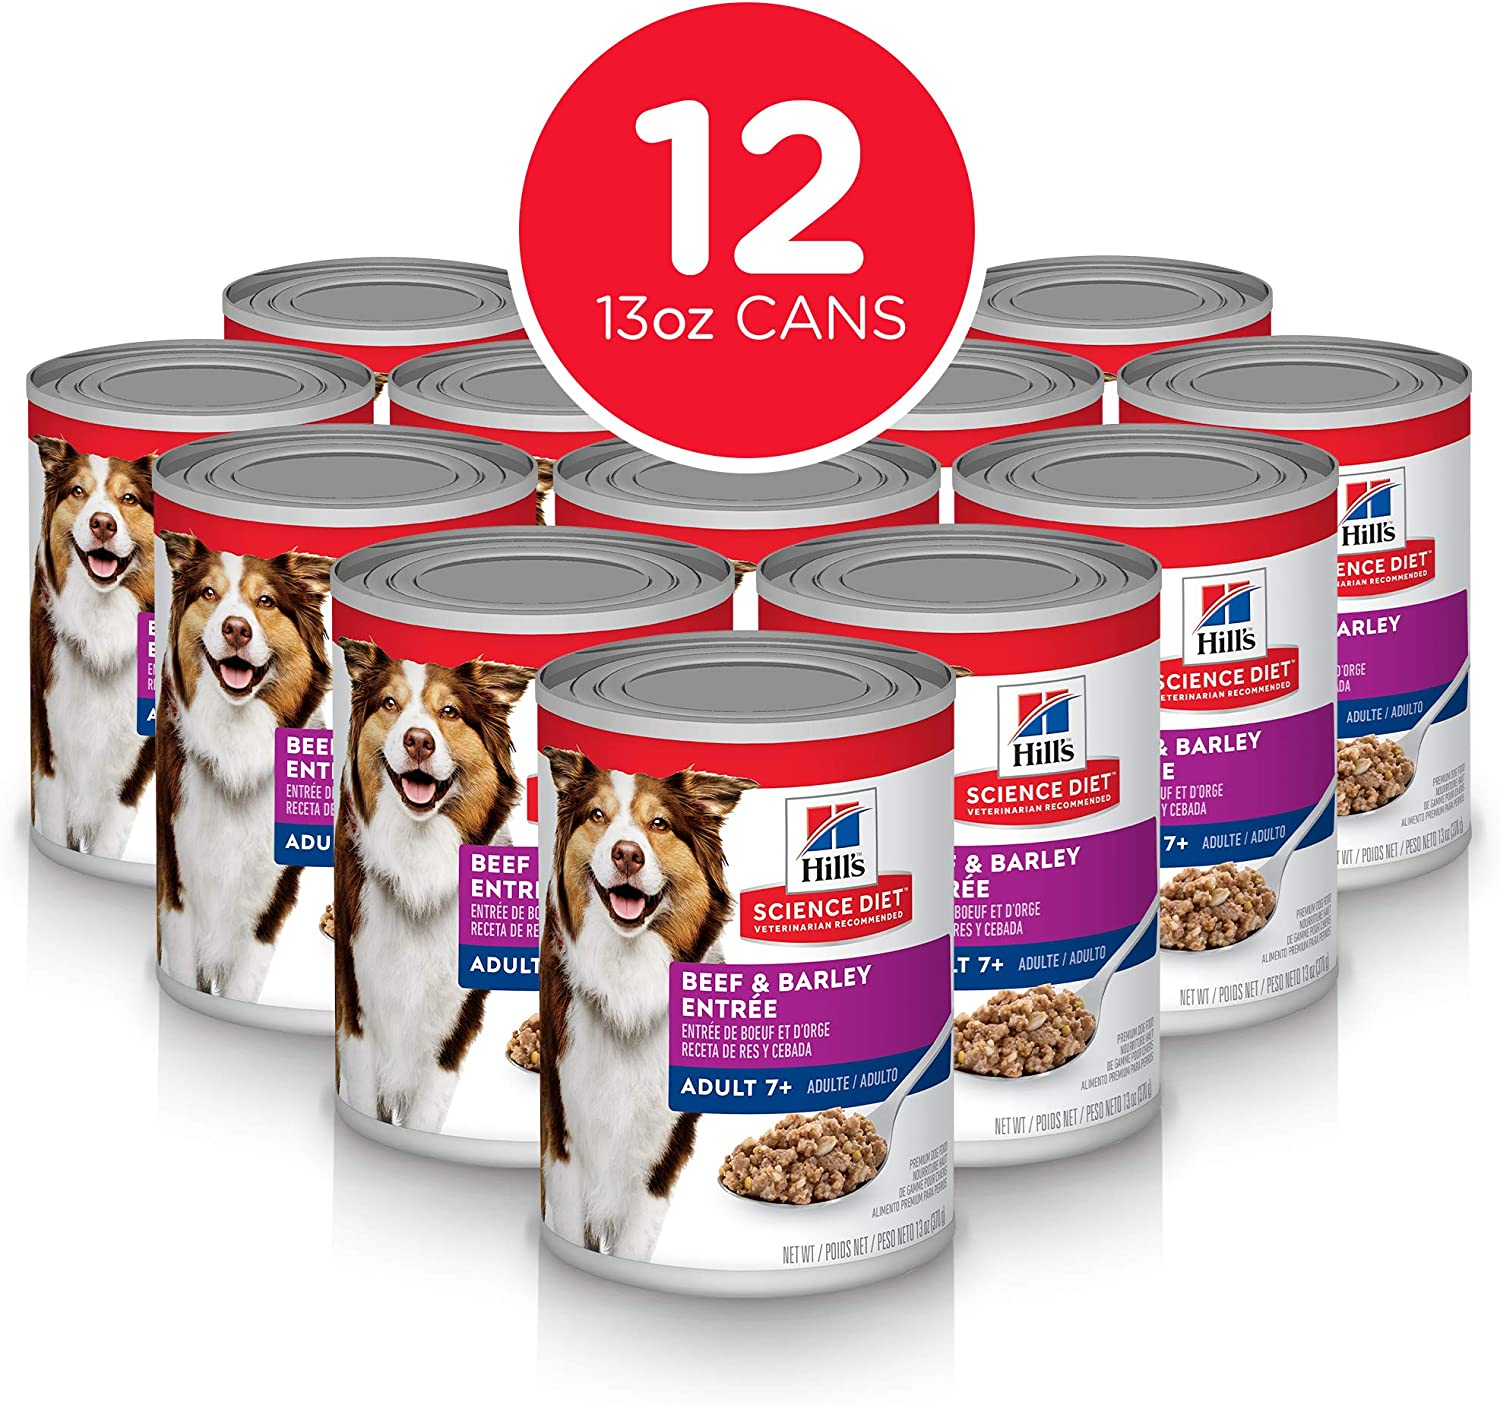 Hill's Science Diet Canned Wet Dog Food, 7+ For Senior Dogs